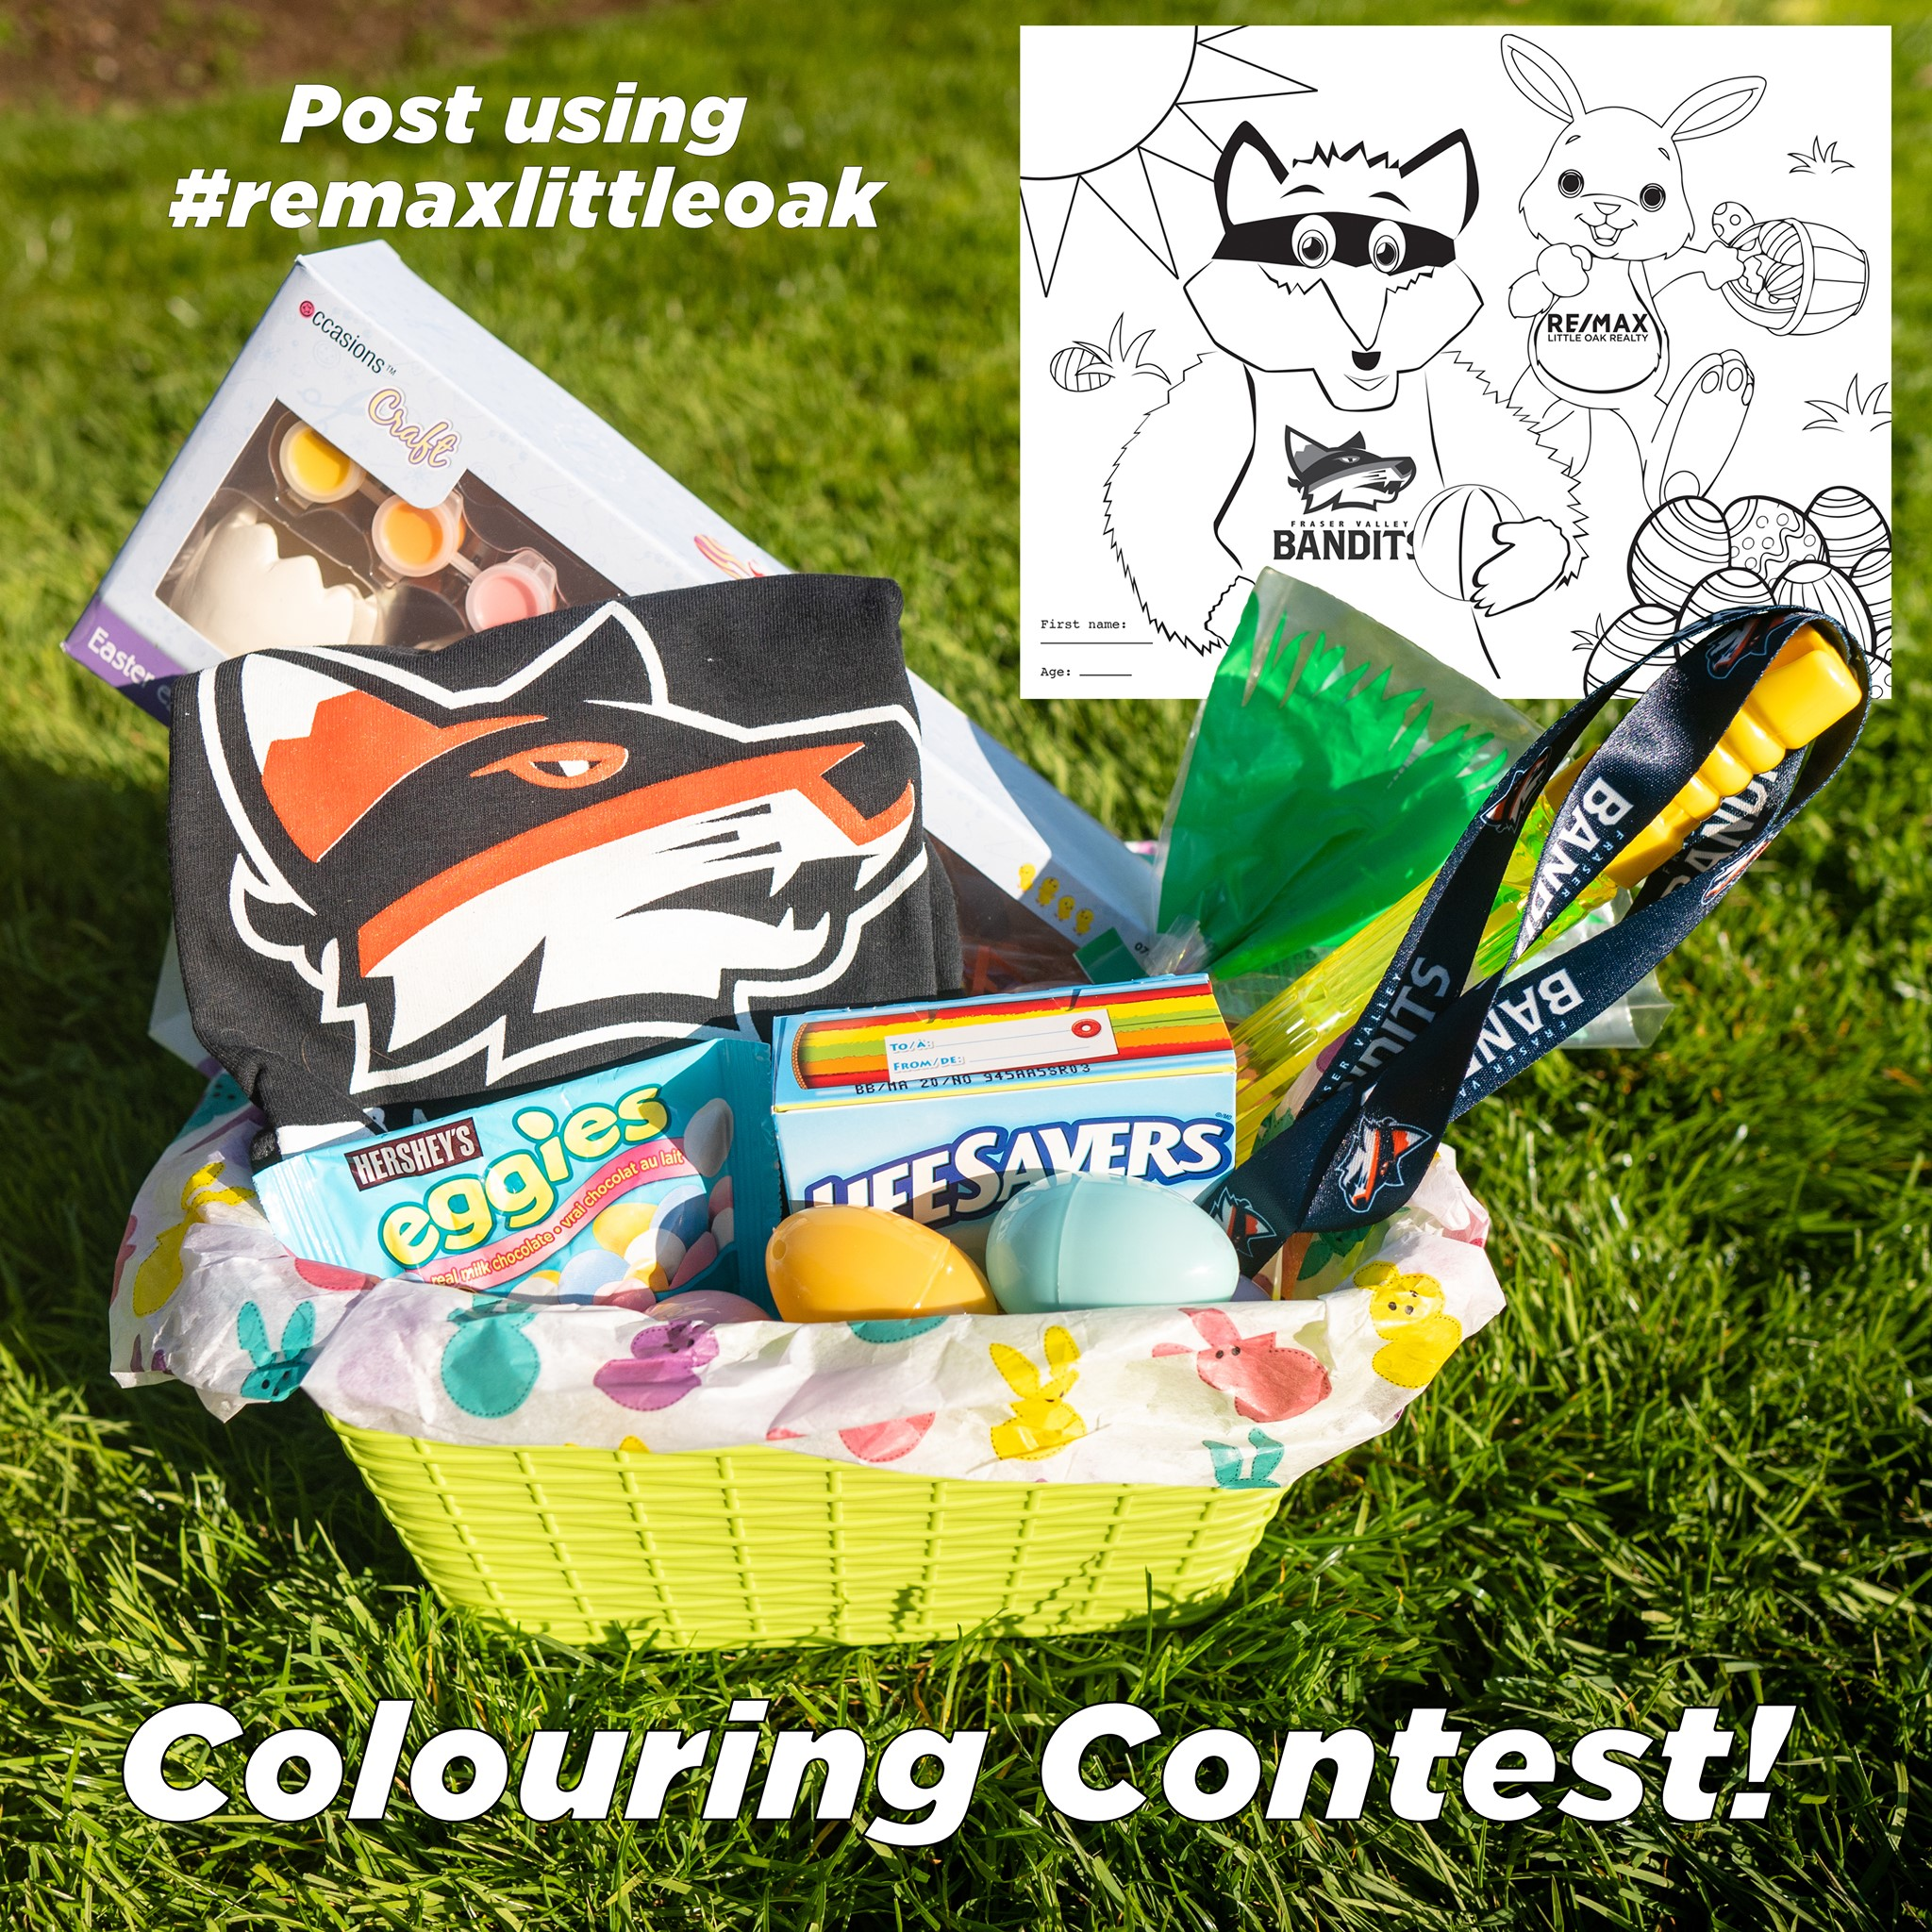 Easter 2020 Colouring Contest with RE/MAX Little Oak & the Fraser Valley Bandits